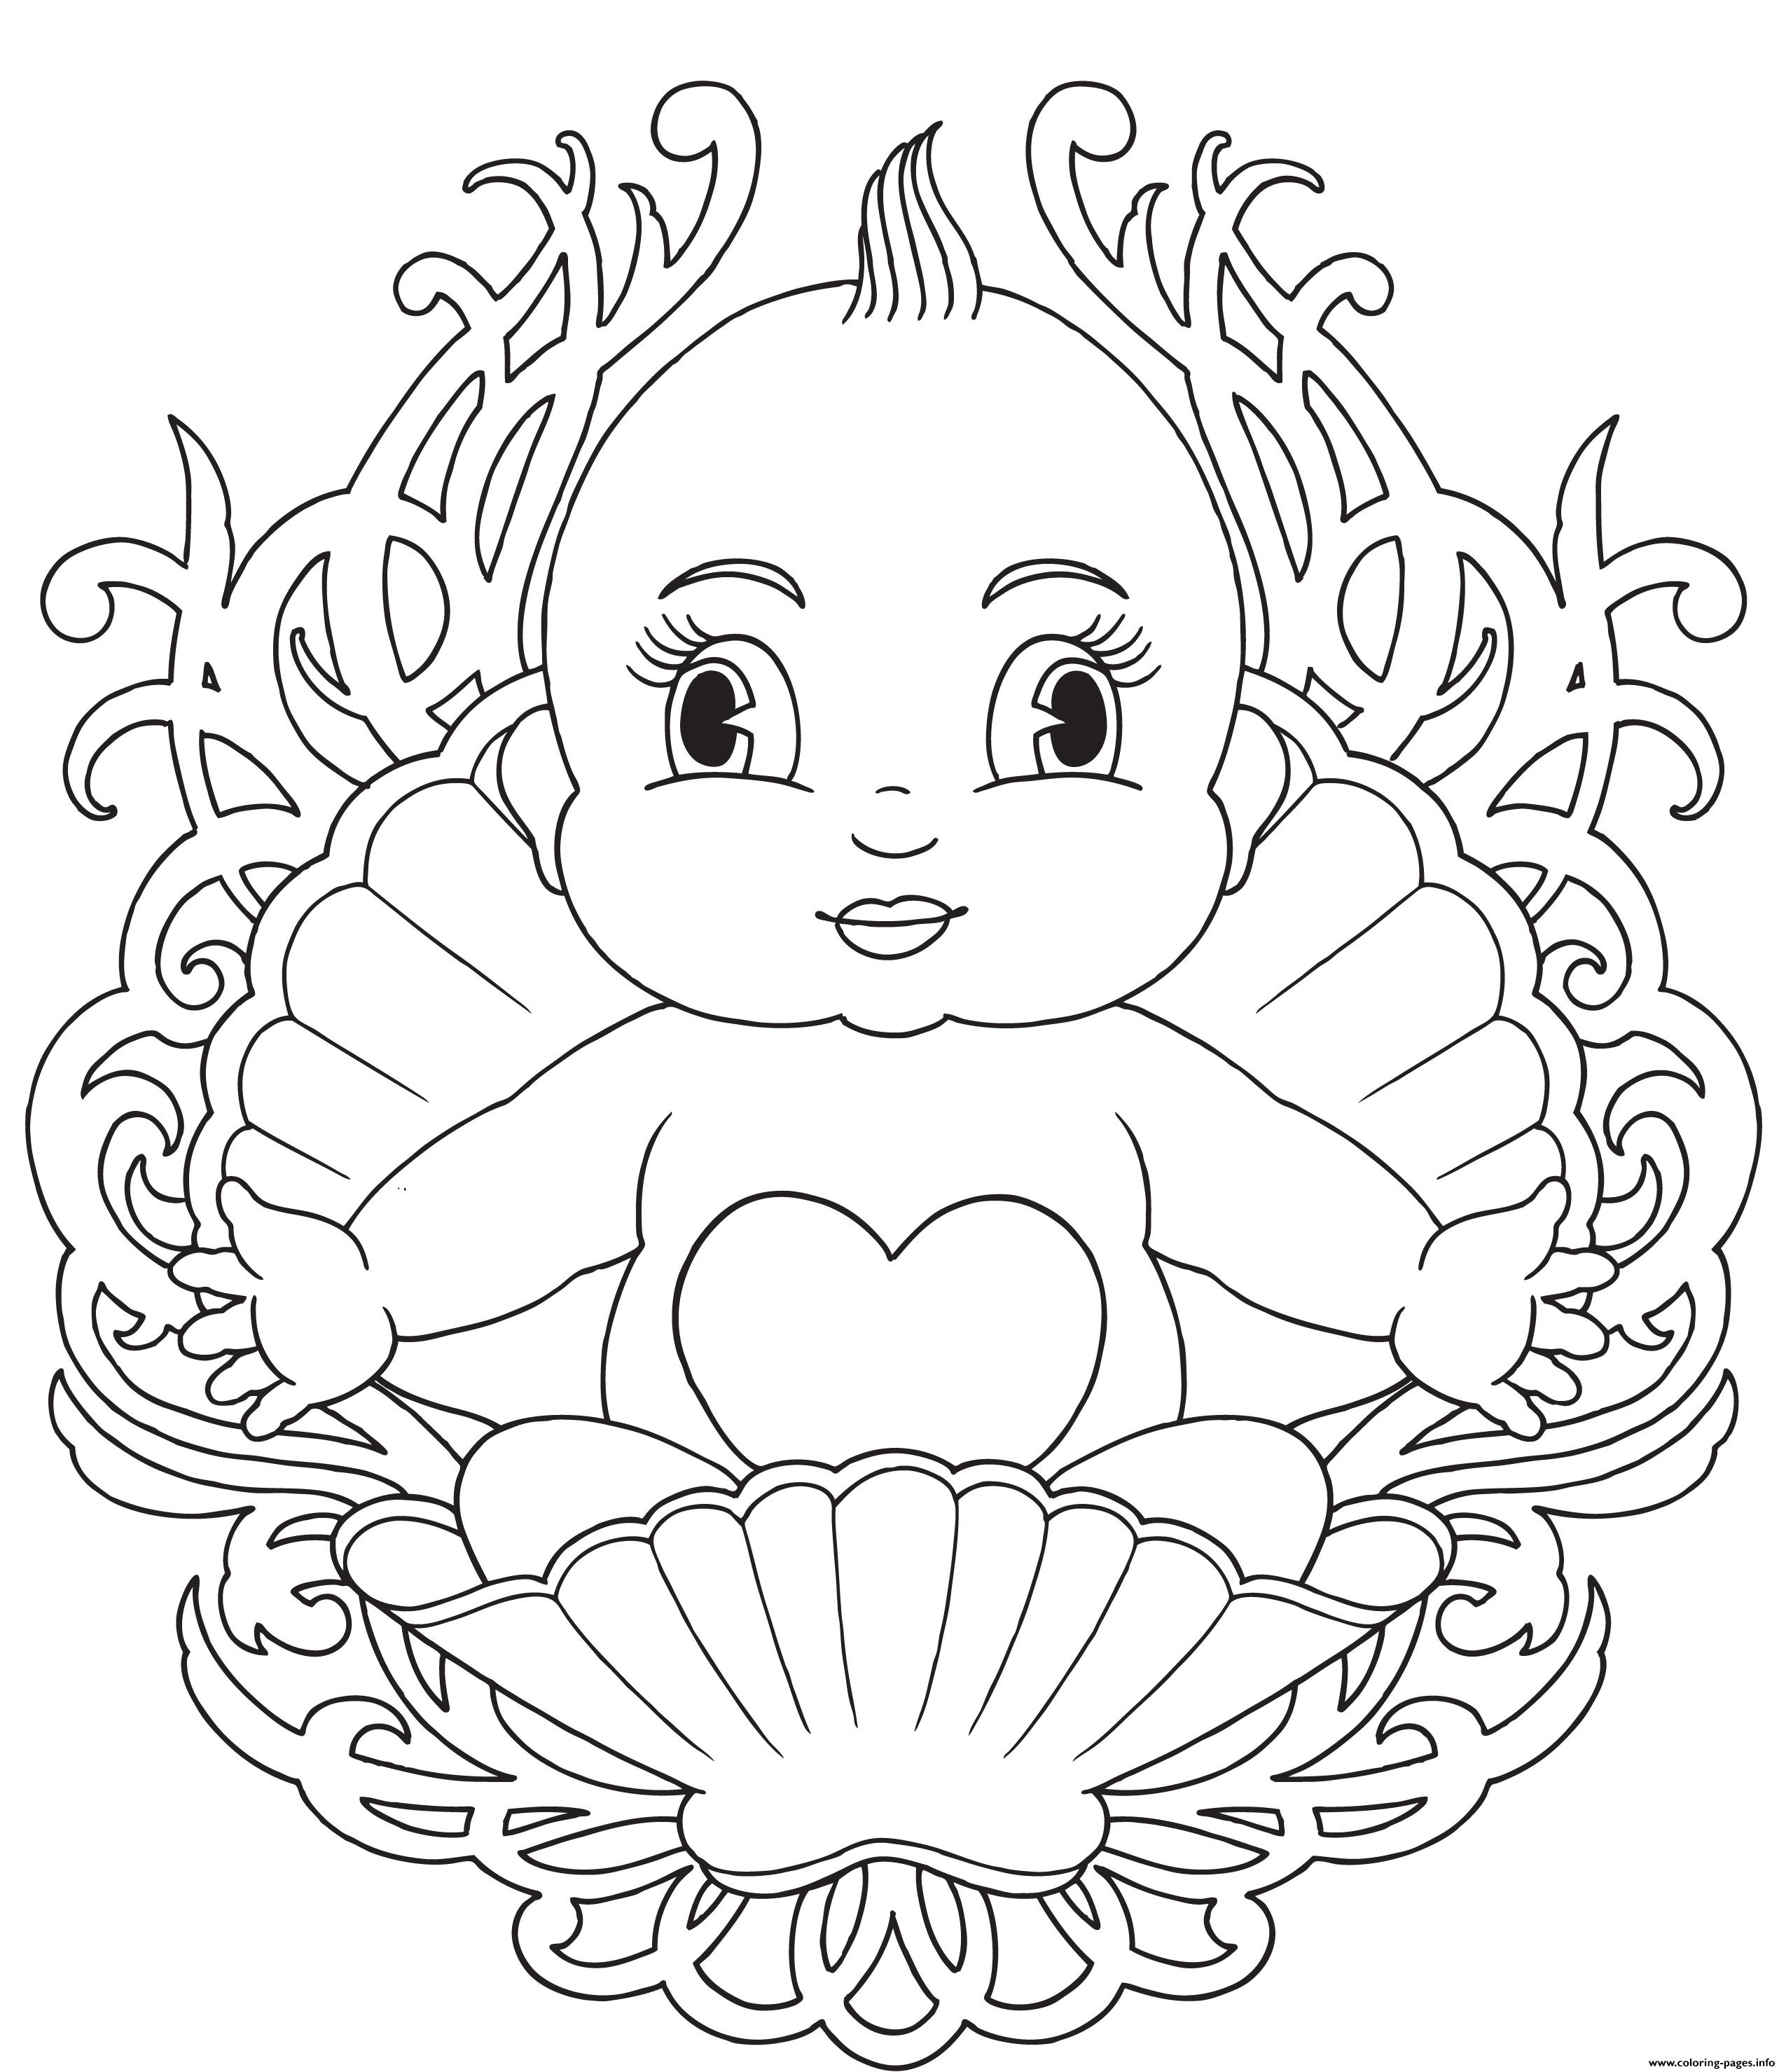 Baby Mandala coloring pages